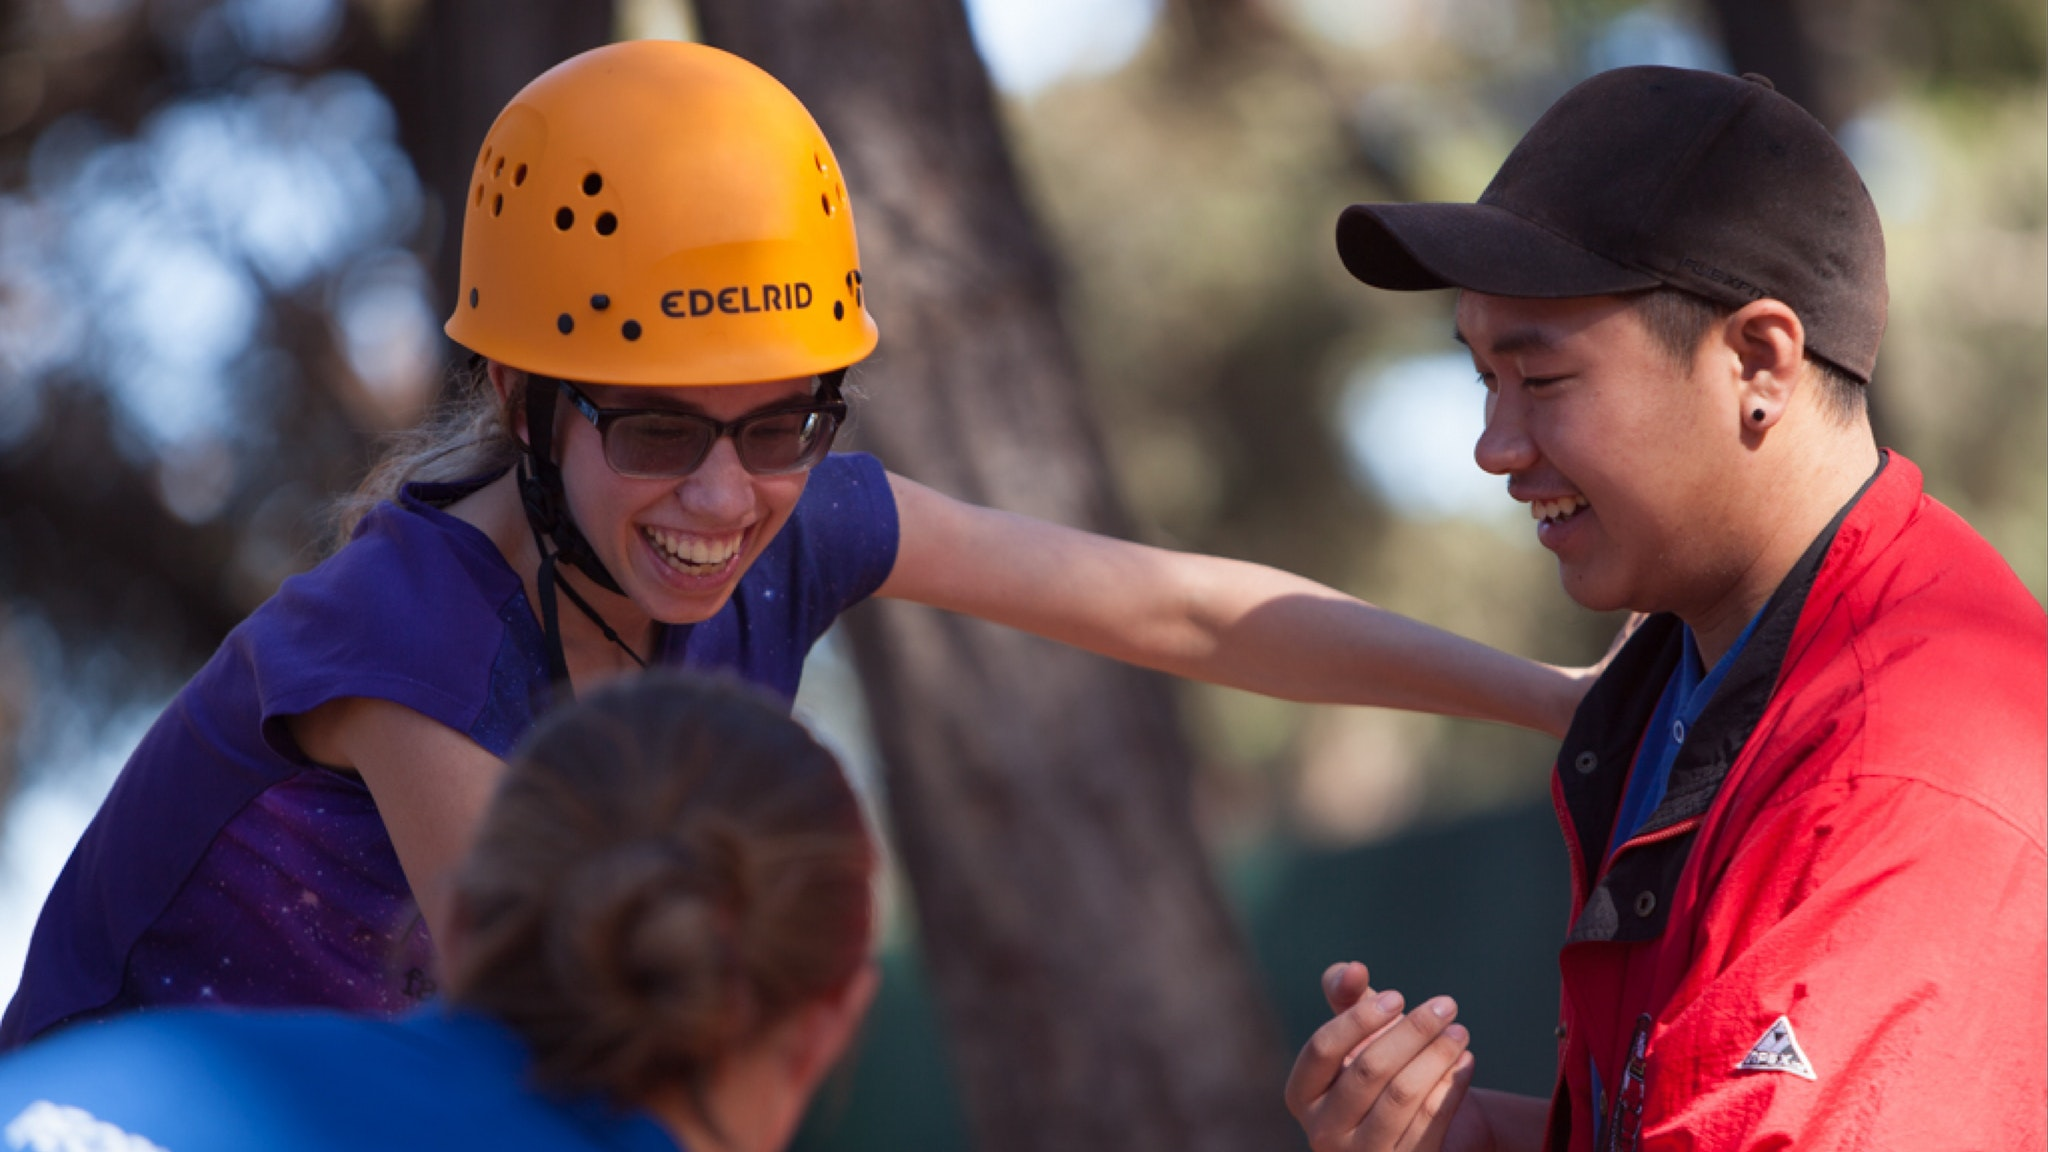 Image: Girl supported by volunteers on low ropes